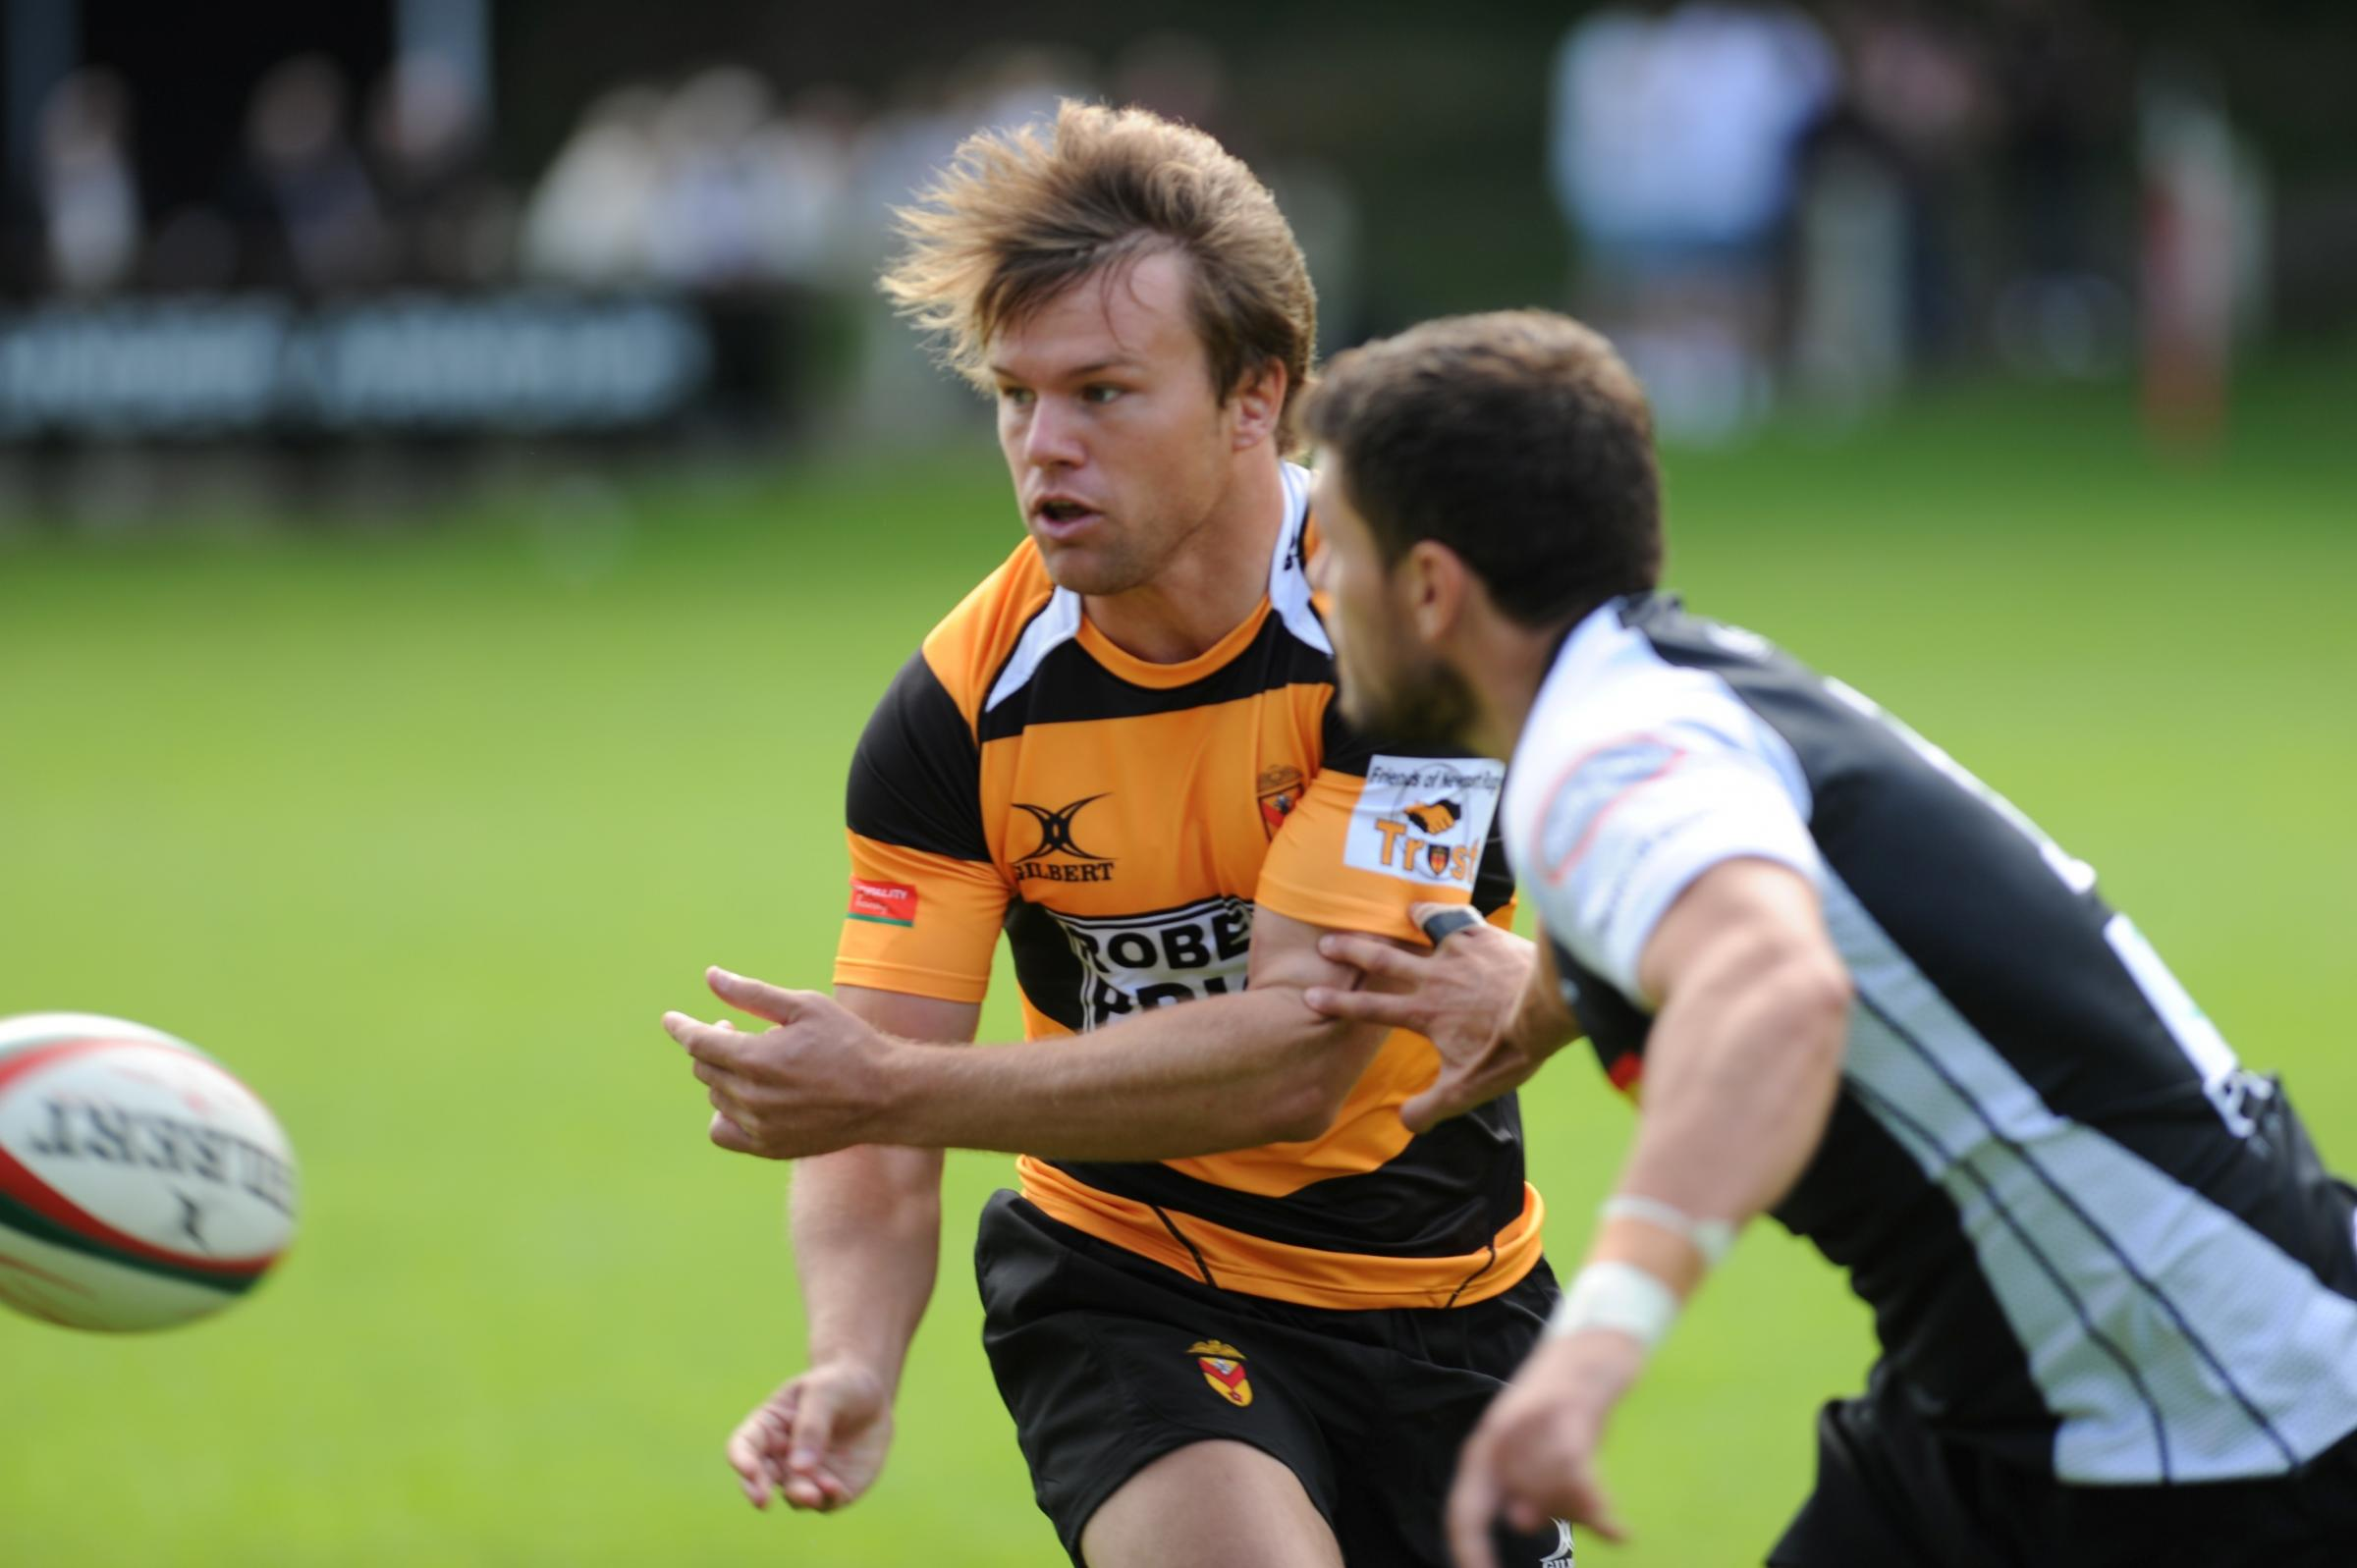 MAN OF THE MATCH: Newport's Geraint O'Driscoll